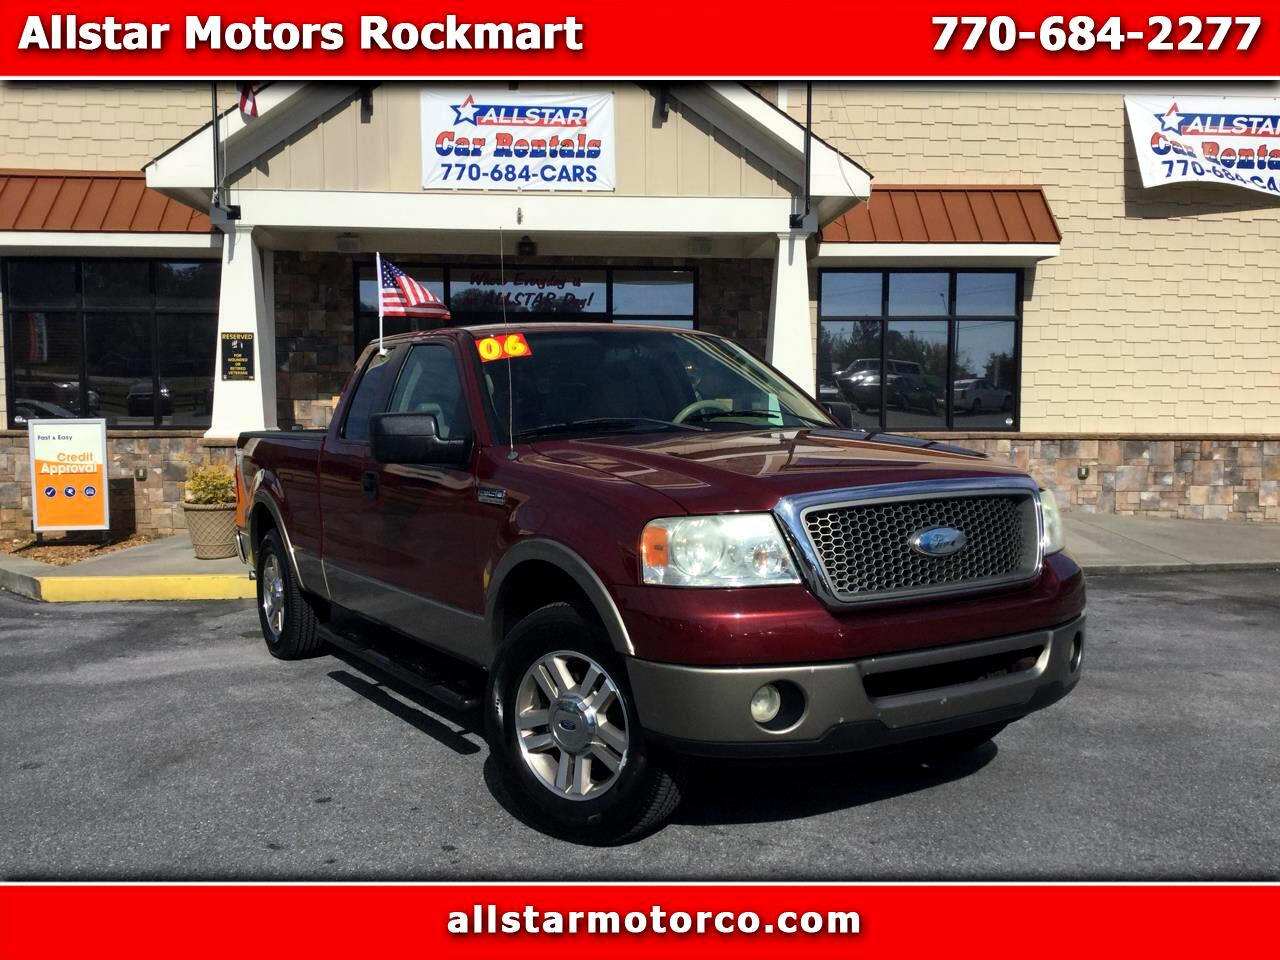 2006 Ford F-150 Supercab 157